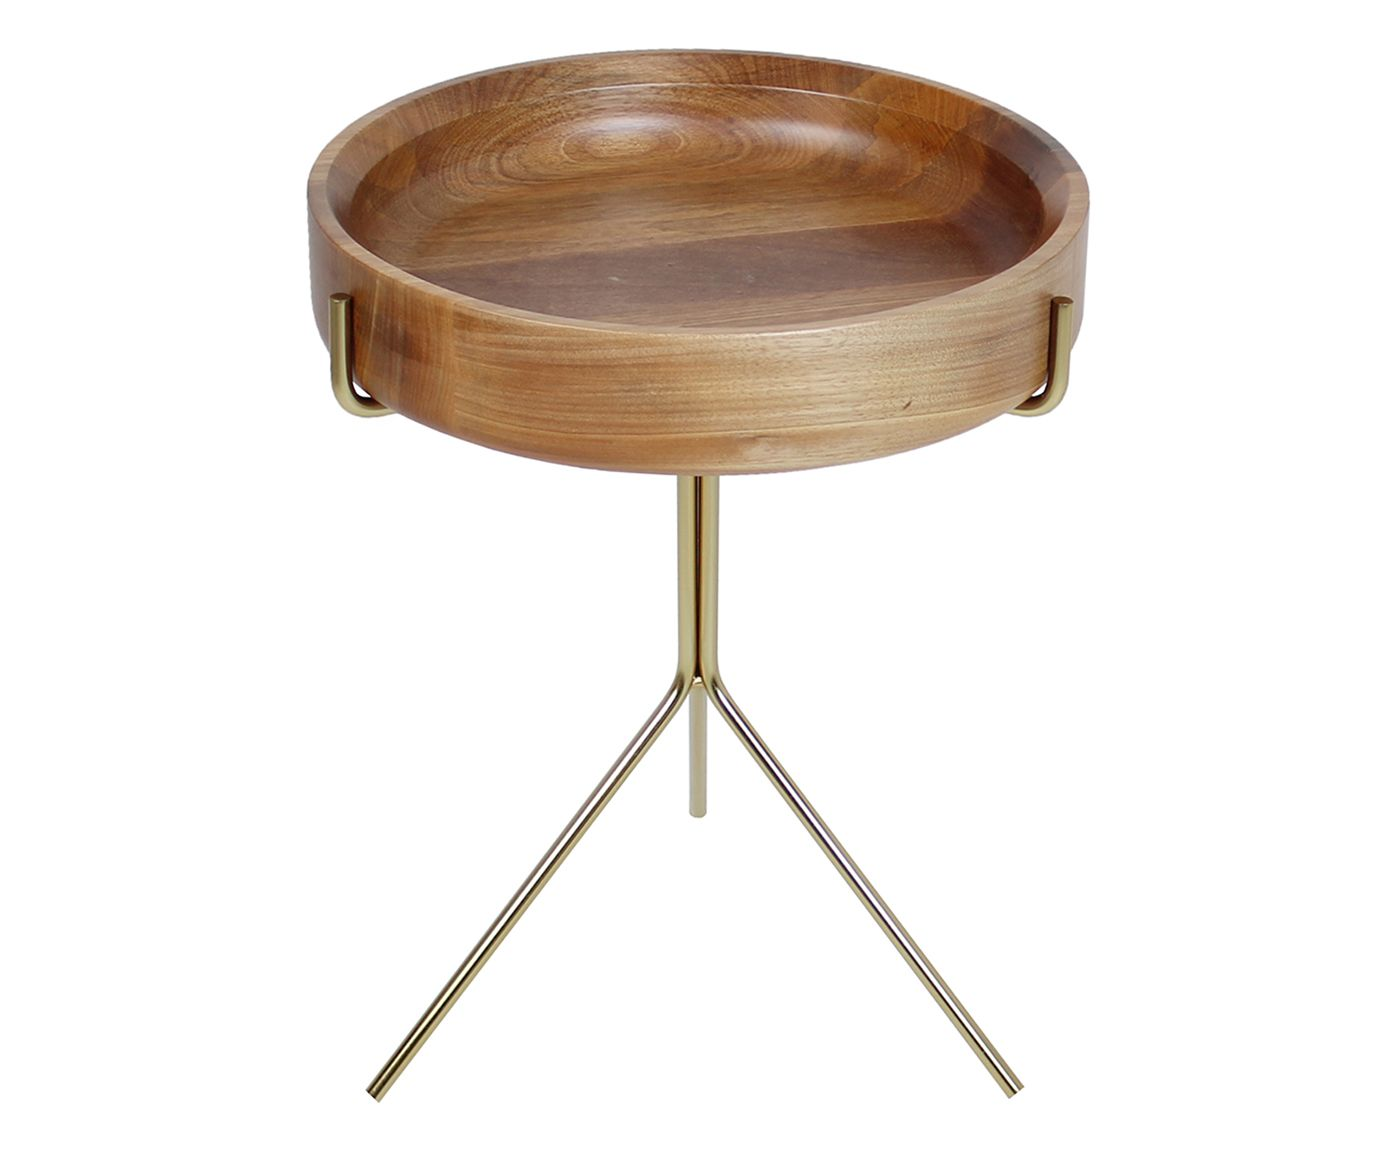 Mesa Lateral Live Marrom Claro - 43X38cm   Westwing.com.br